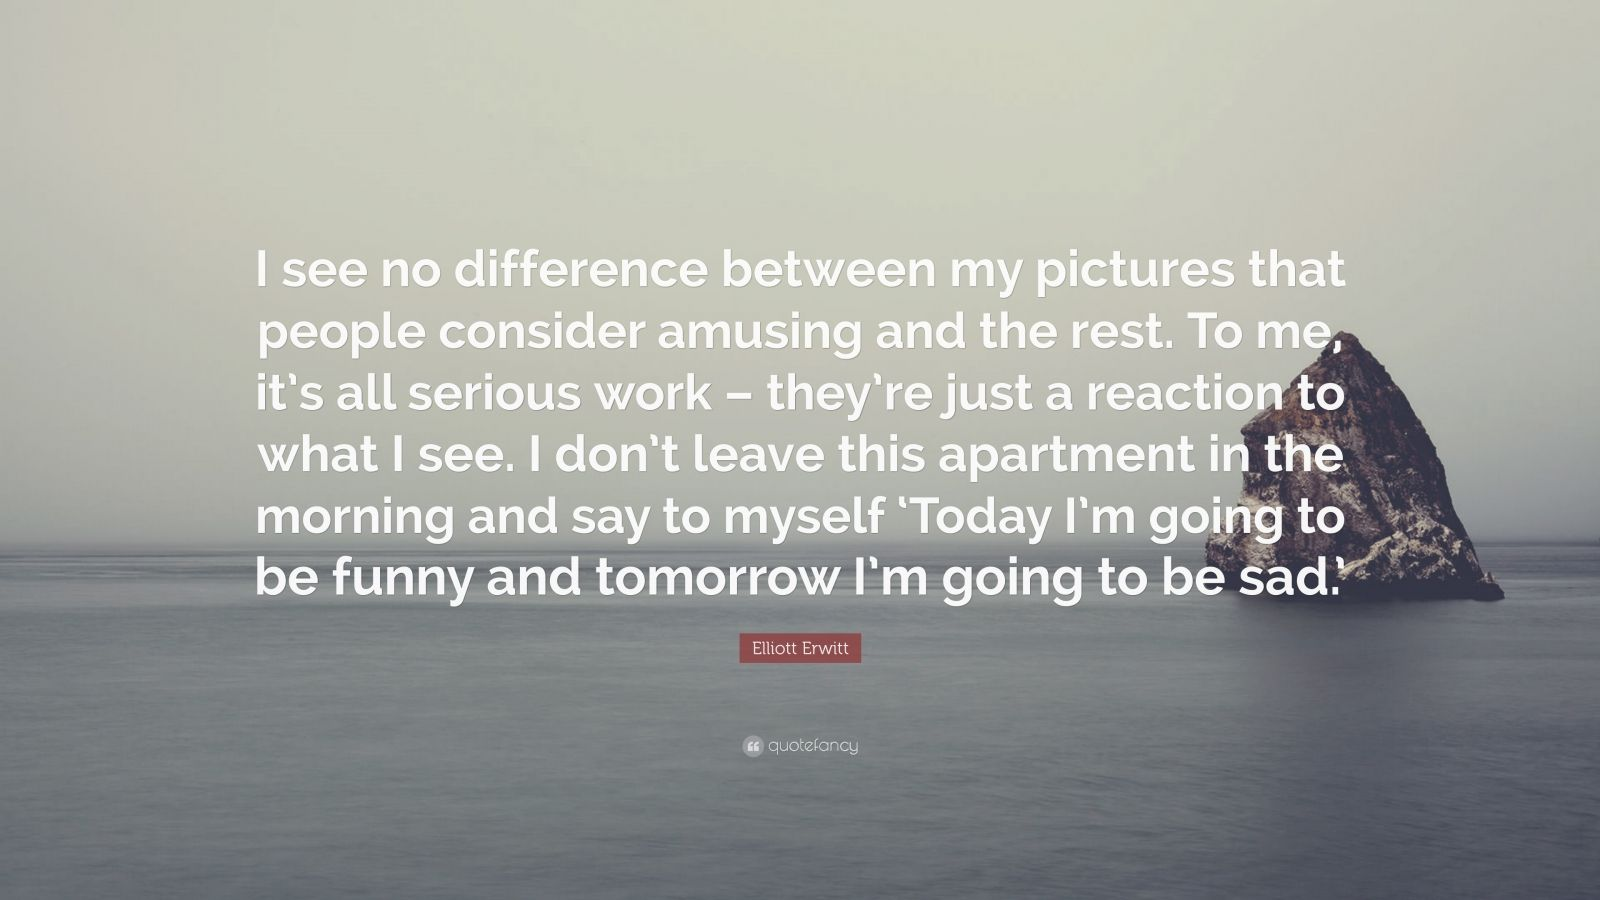 """Elliott Erwitt Quote: """"I see no difference between my pictures that people consider amusing and the rest. To me, it's all serious work – they're just a reaction to what I see. I don't leave this apartment in the morning and say to myself 'Today I'm going to be funny and tomorrow I'm going to be sad.'"""""""